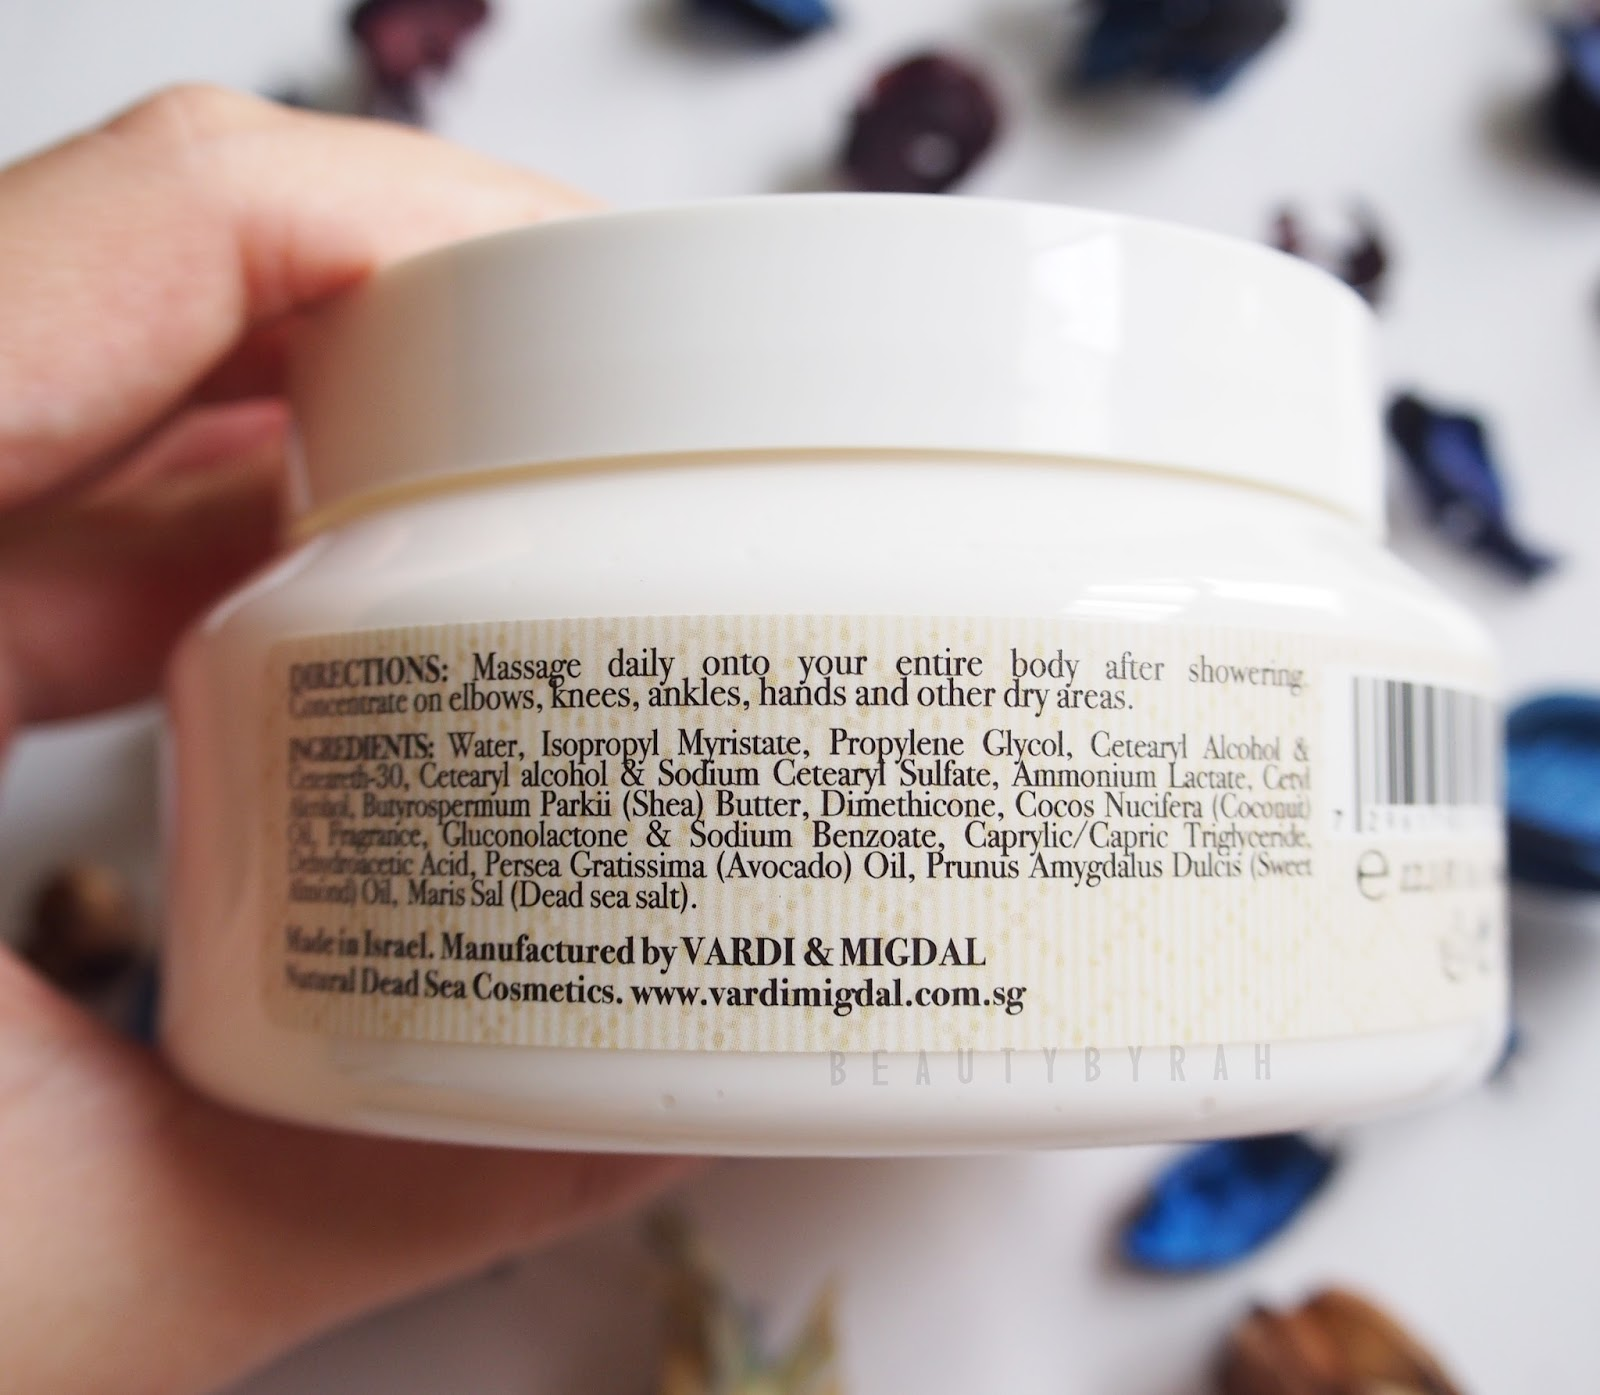 Vardi & Midgal Body Care Body Butter Review